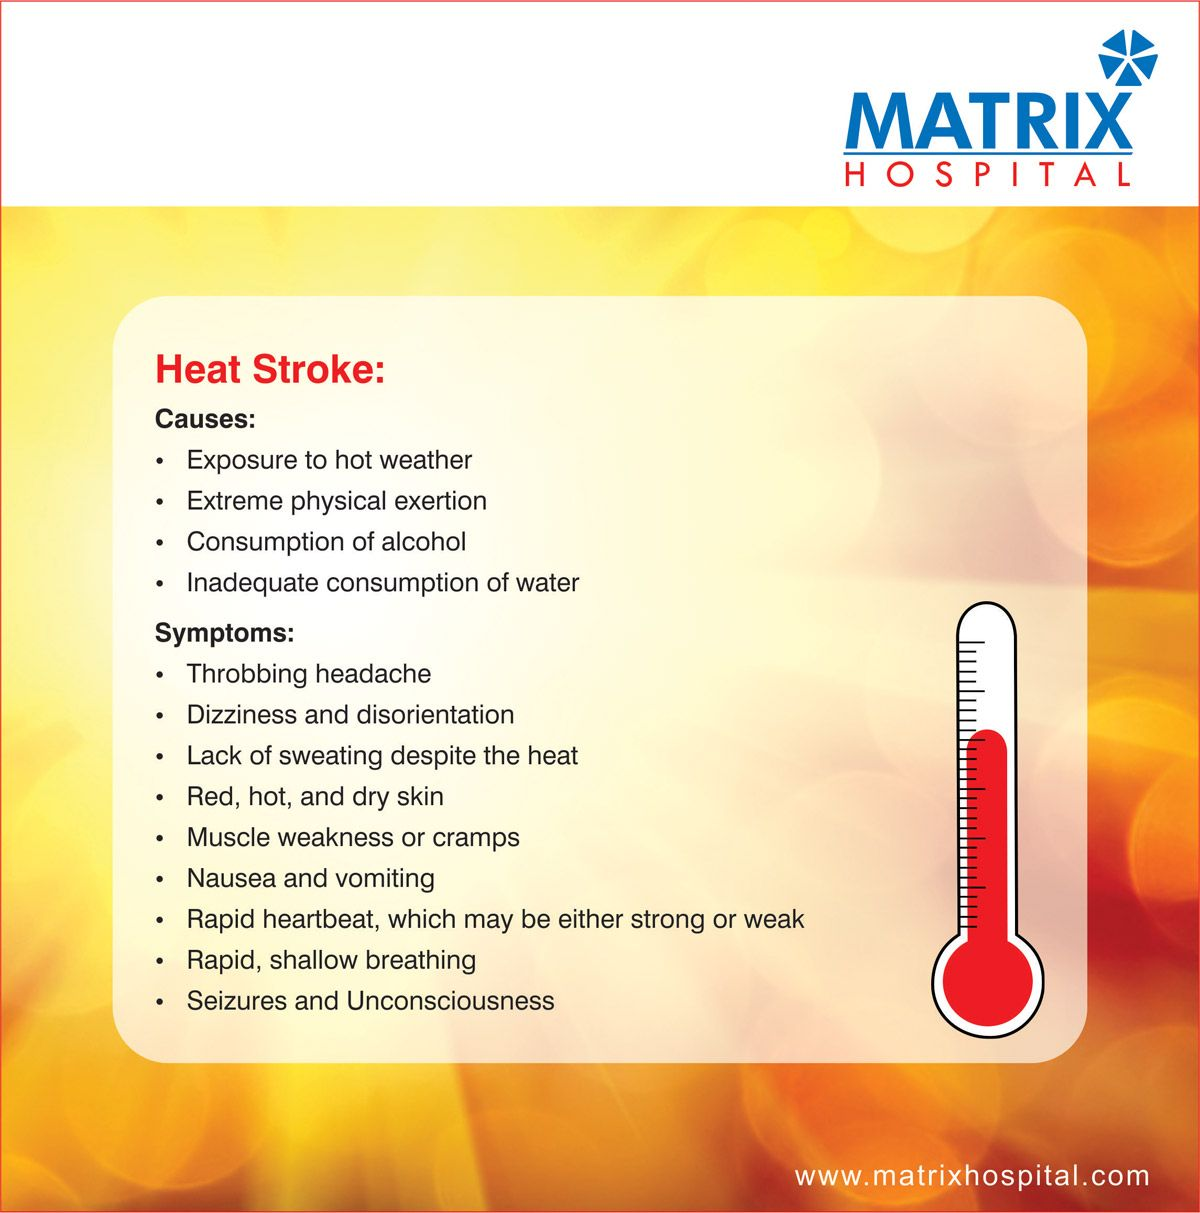 Heat Stroke:  Causes: •	Exposure to hot weather  •	Extreme physical exertion •	Consumption of alcohol  •	Inadequate consumption of water.   Symptoms: •	Throbbing headache •	Dizziness and disorientation •	Lack of sweating despite the heat •	Red, hot, and dry skin •	Muscle weakness or cramps •	Nausea and vomiting •	Rapid heartbeat, which may be either strong or weak •	Rapid, shallow breathing •	Seizures and Unconsciousness